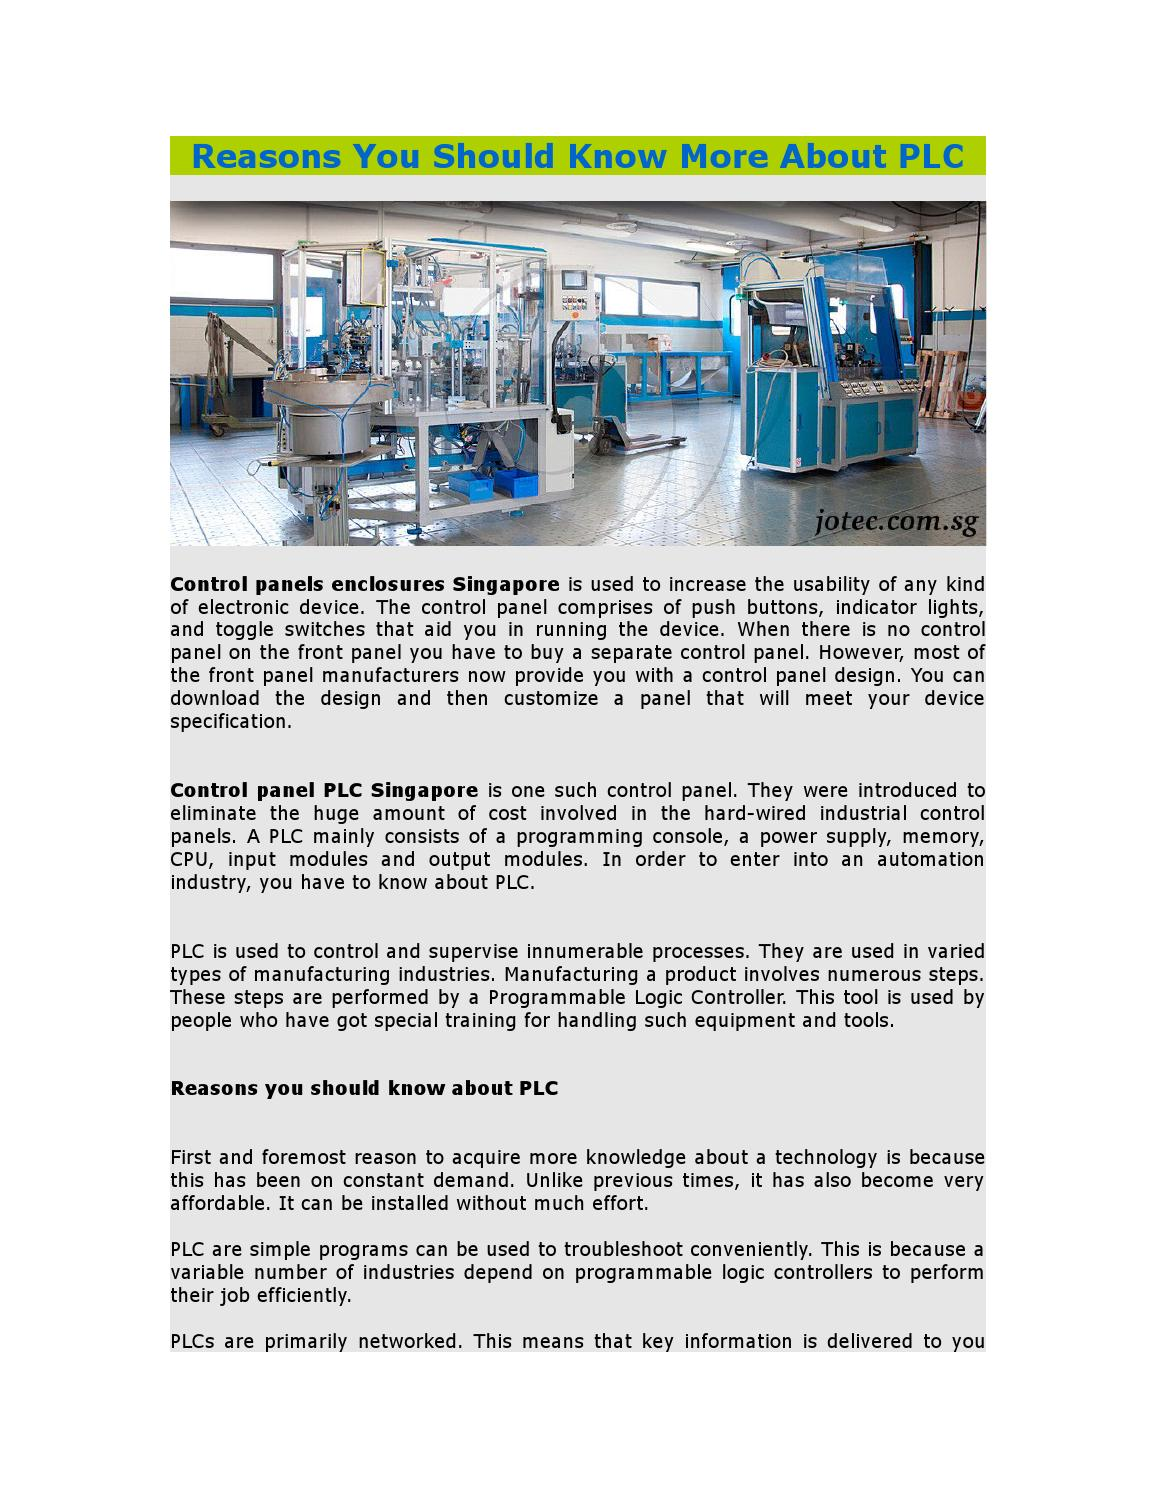 Reasons You Should Know More About PLC by jotec408 - issuu